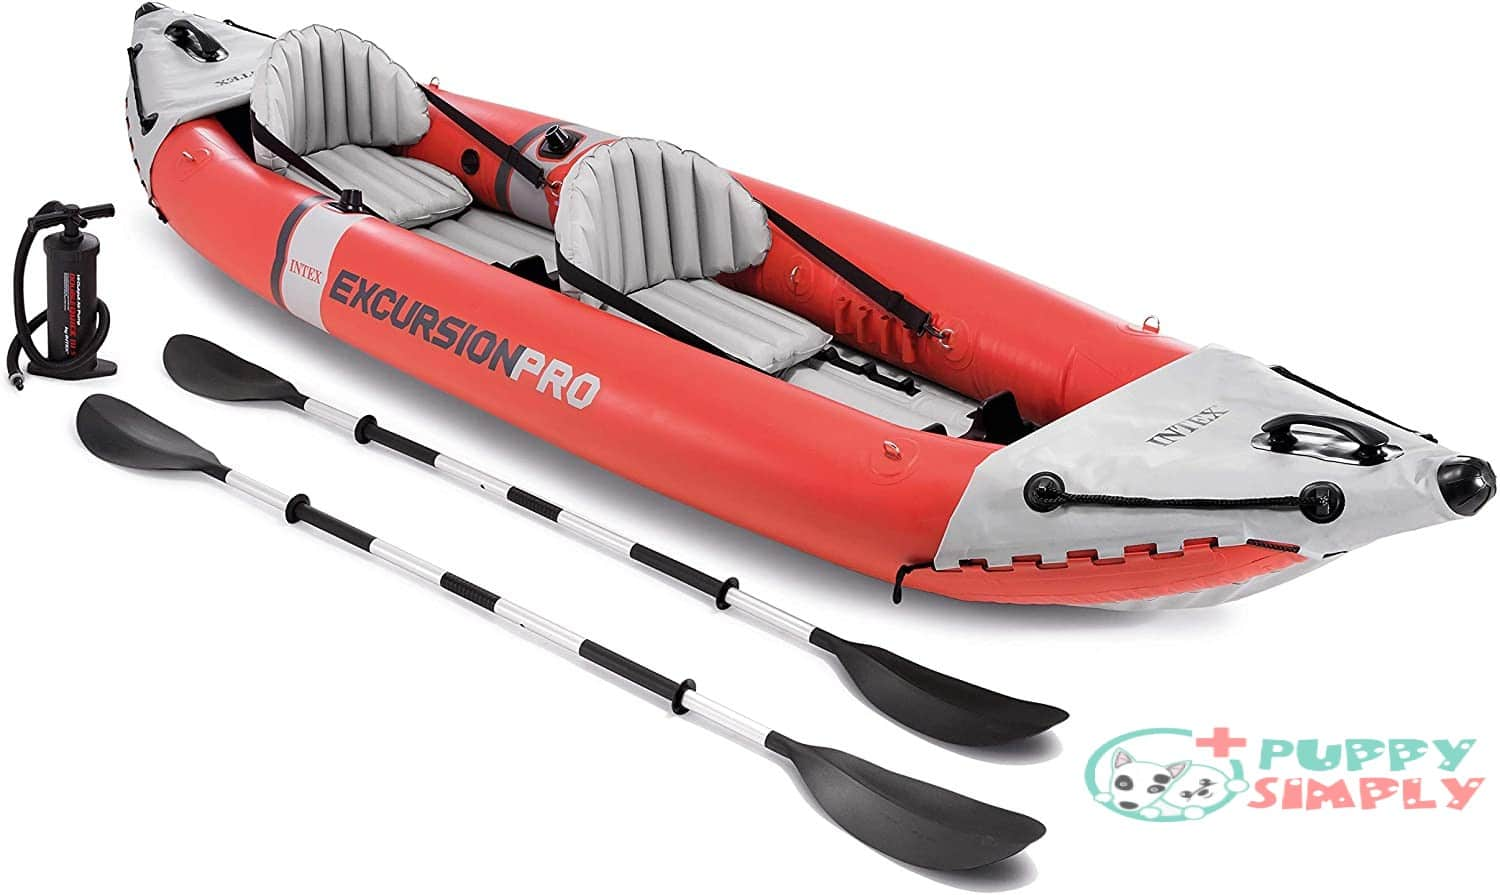 Intex Excursion Pro Kayak, Professional